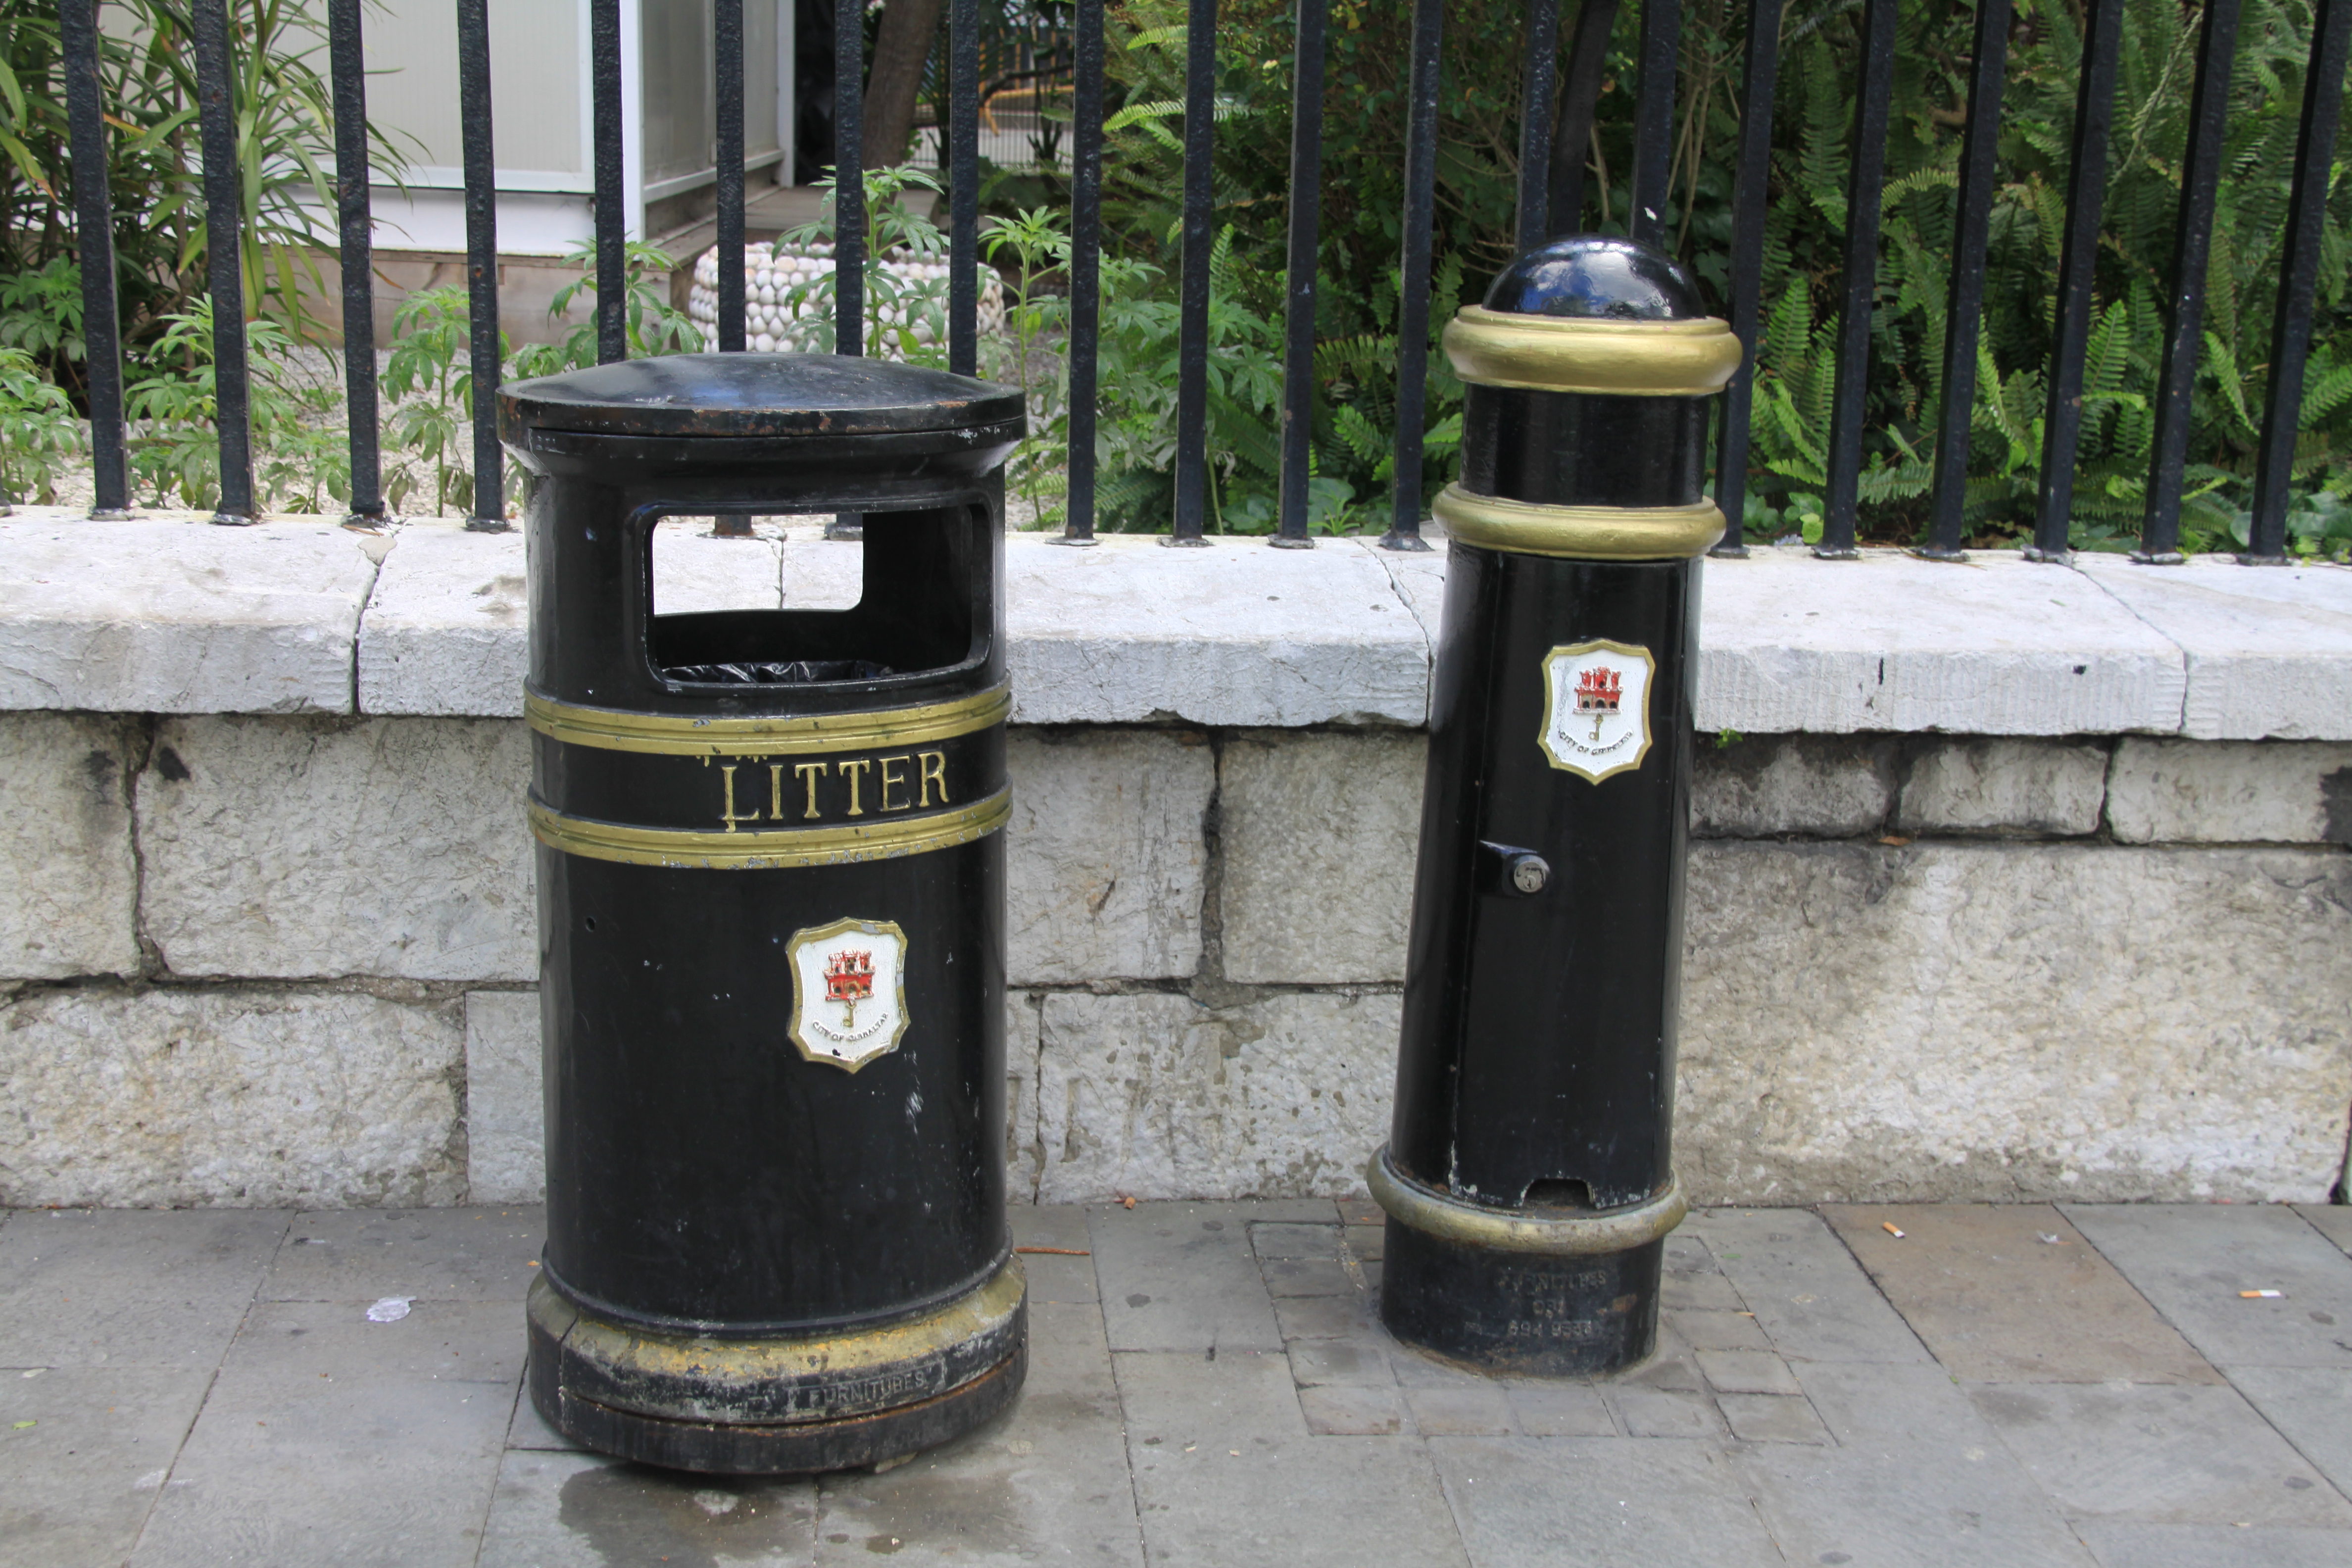 File:Gibraltar Street Furniture 2